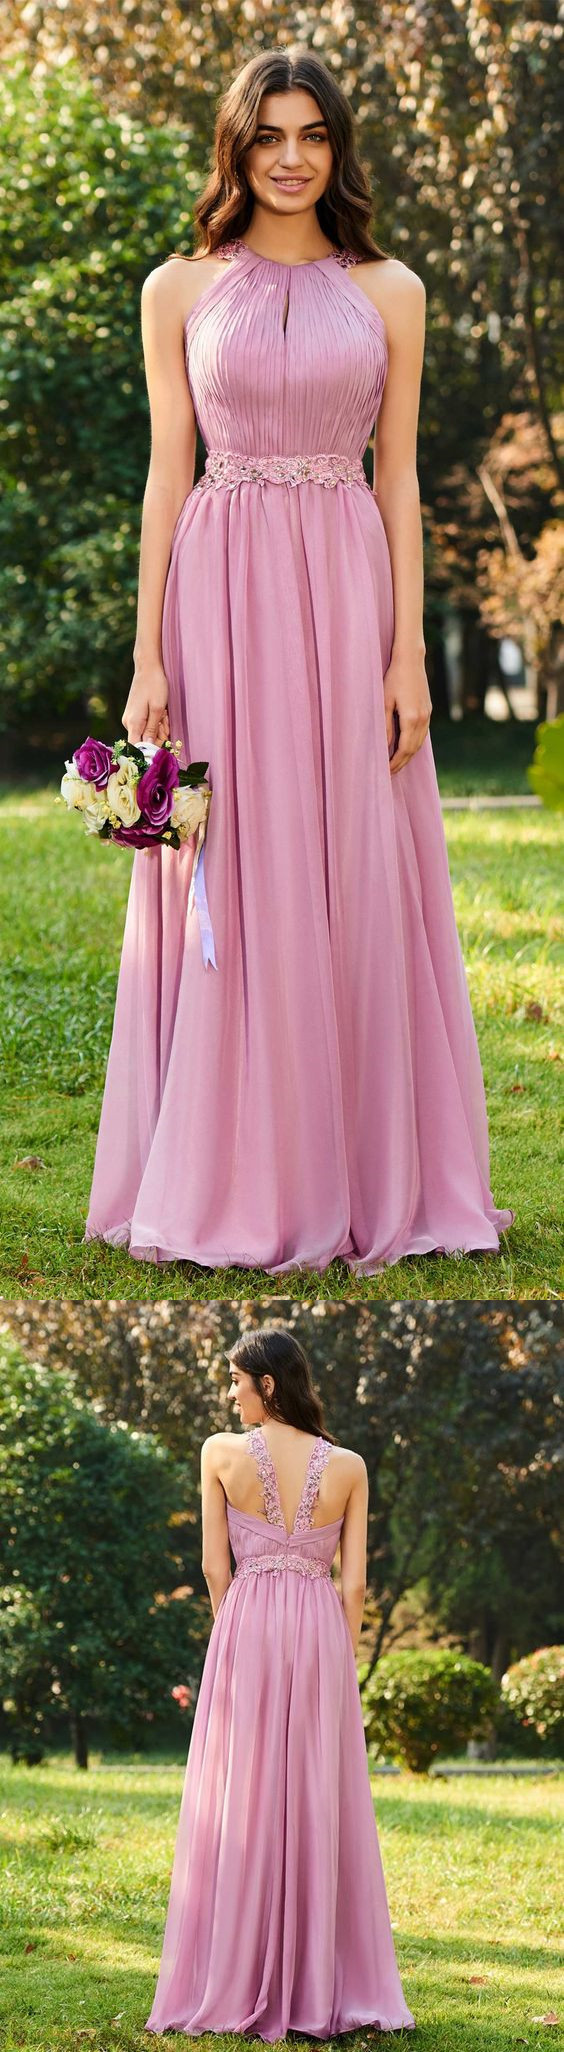 Beaded Halter Pleats Long Bridesmaid Dress